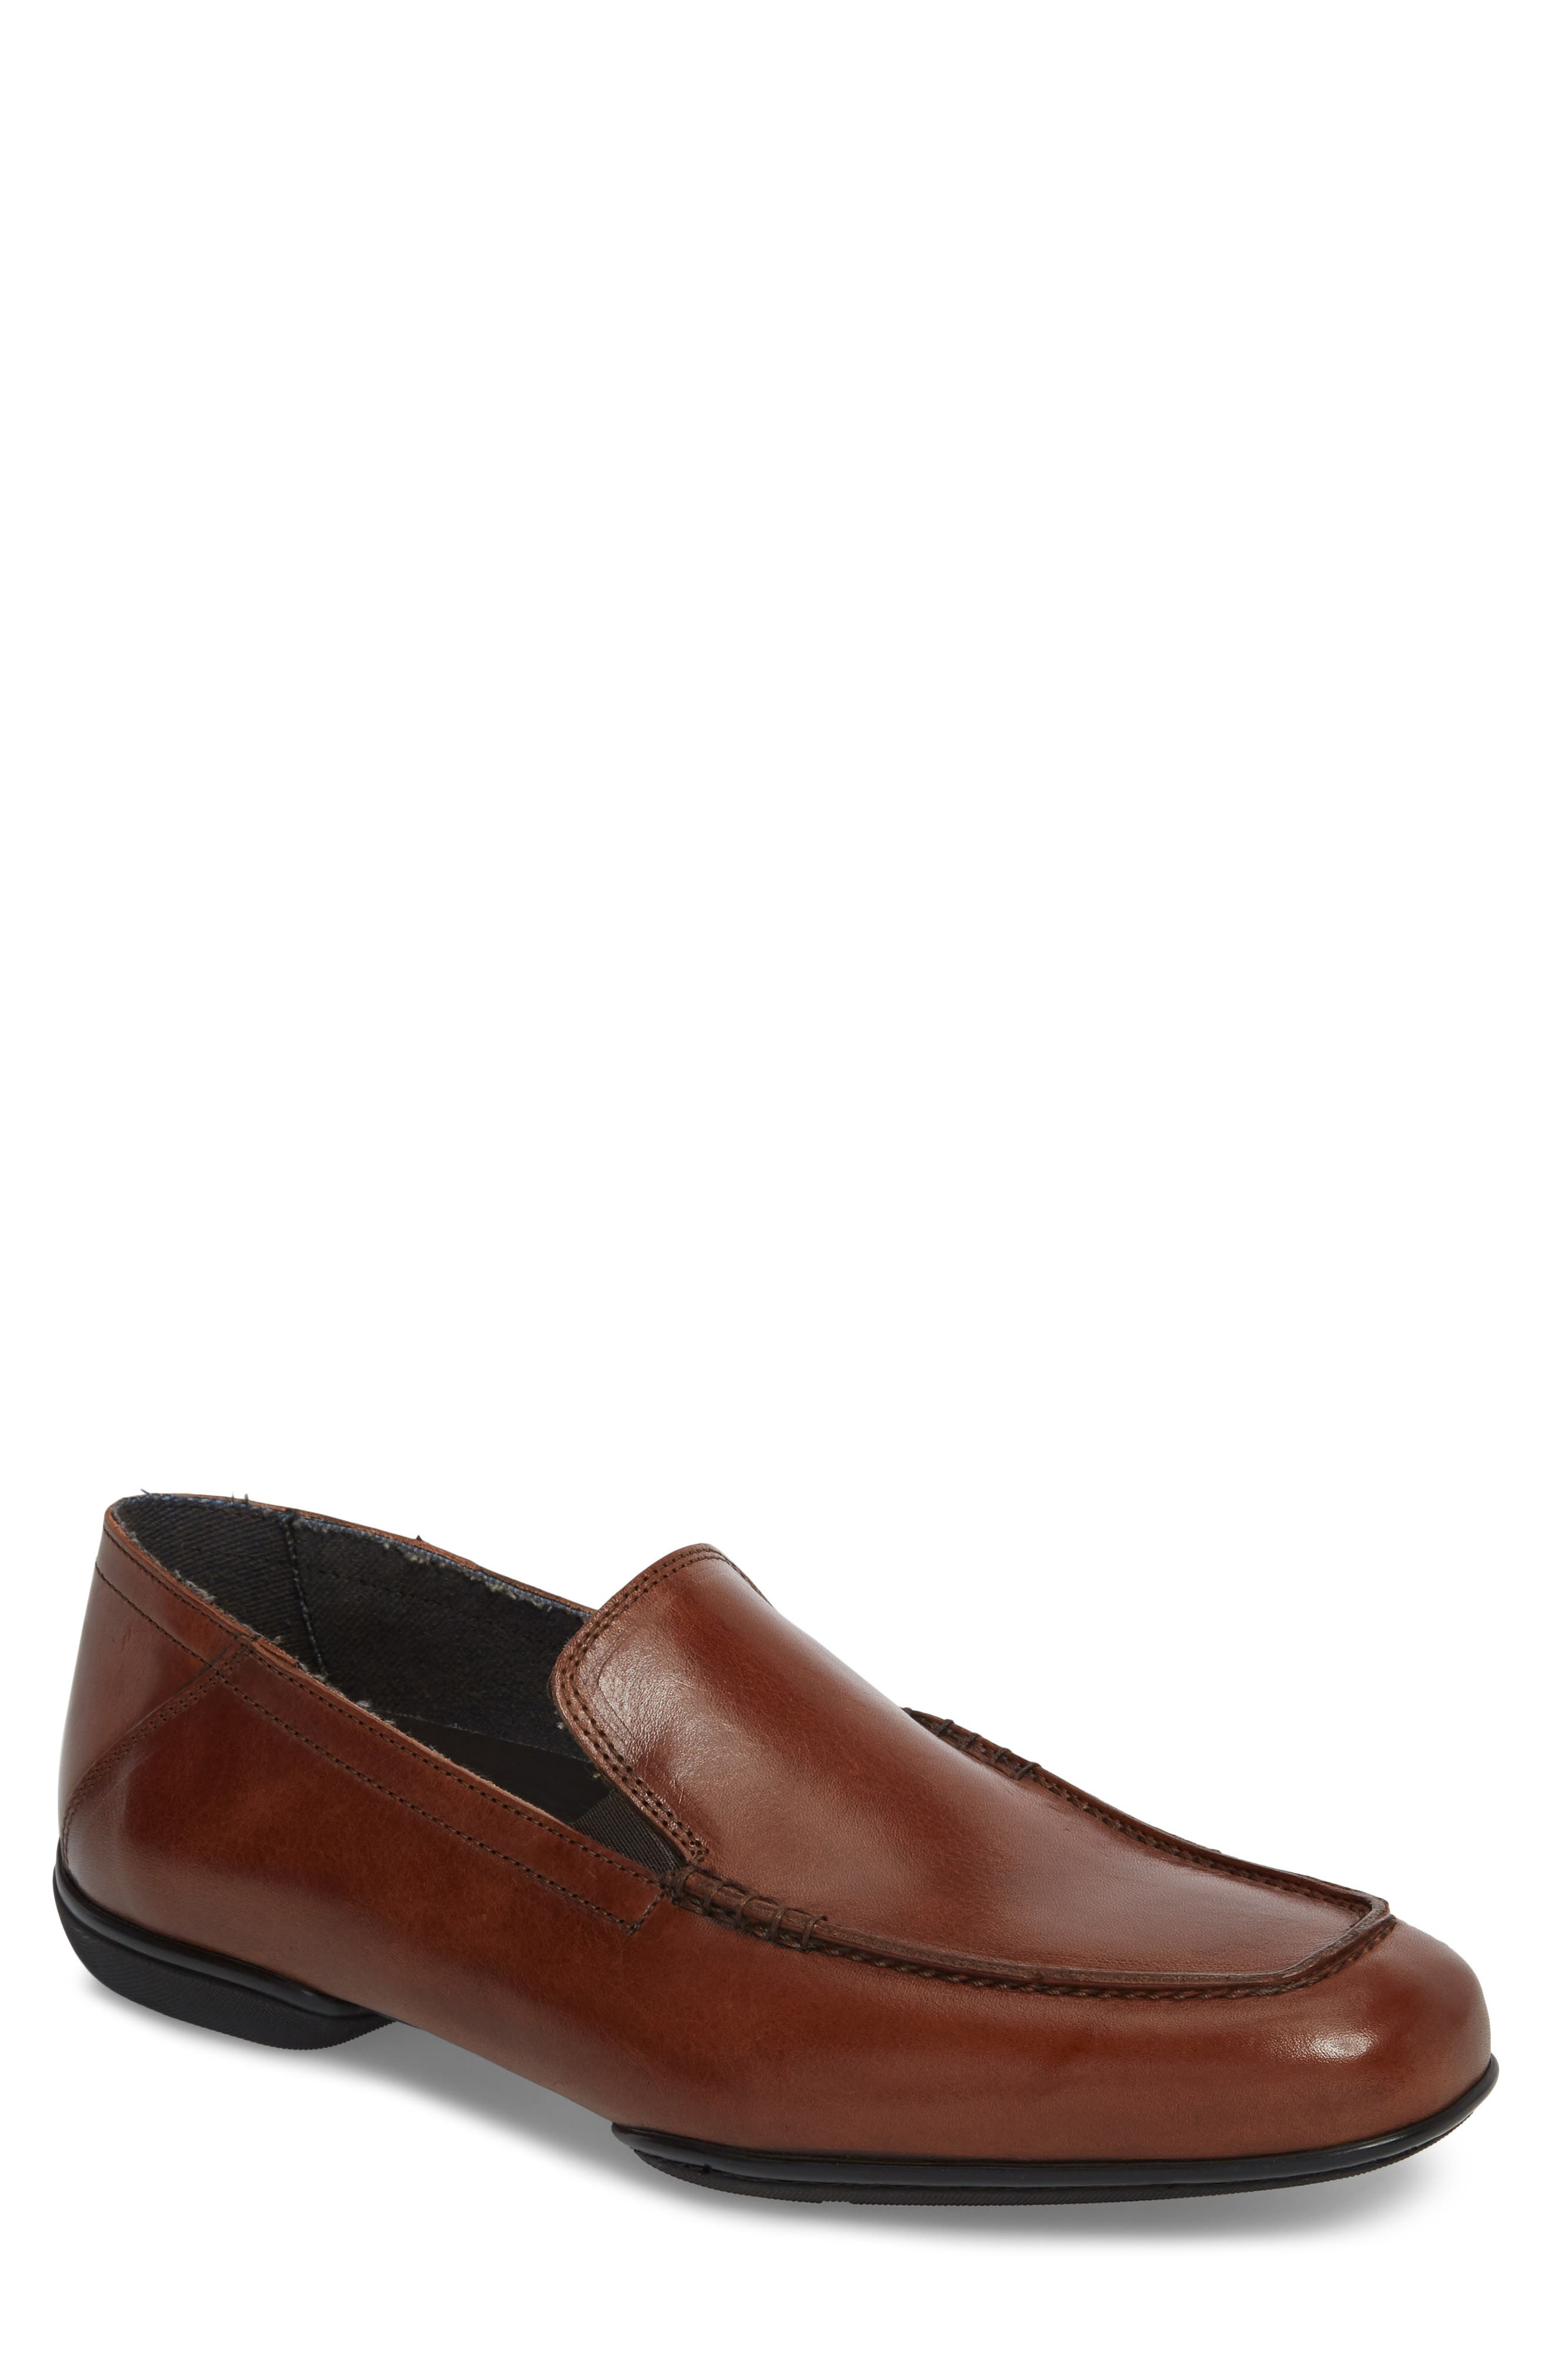 Mens vix Loafer